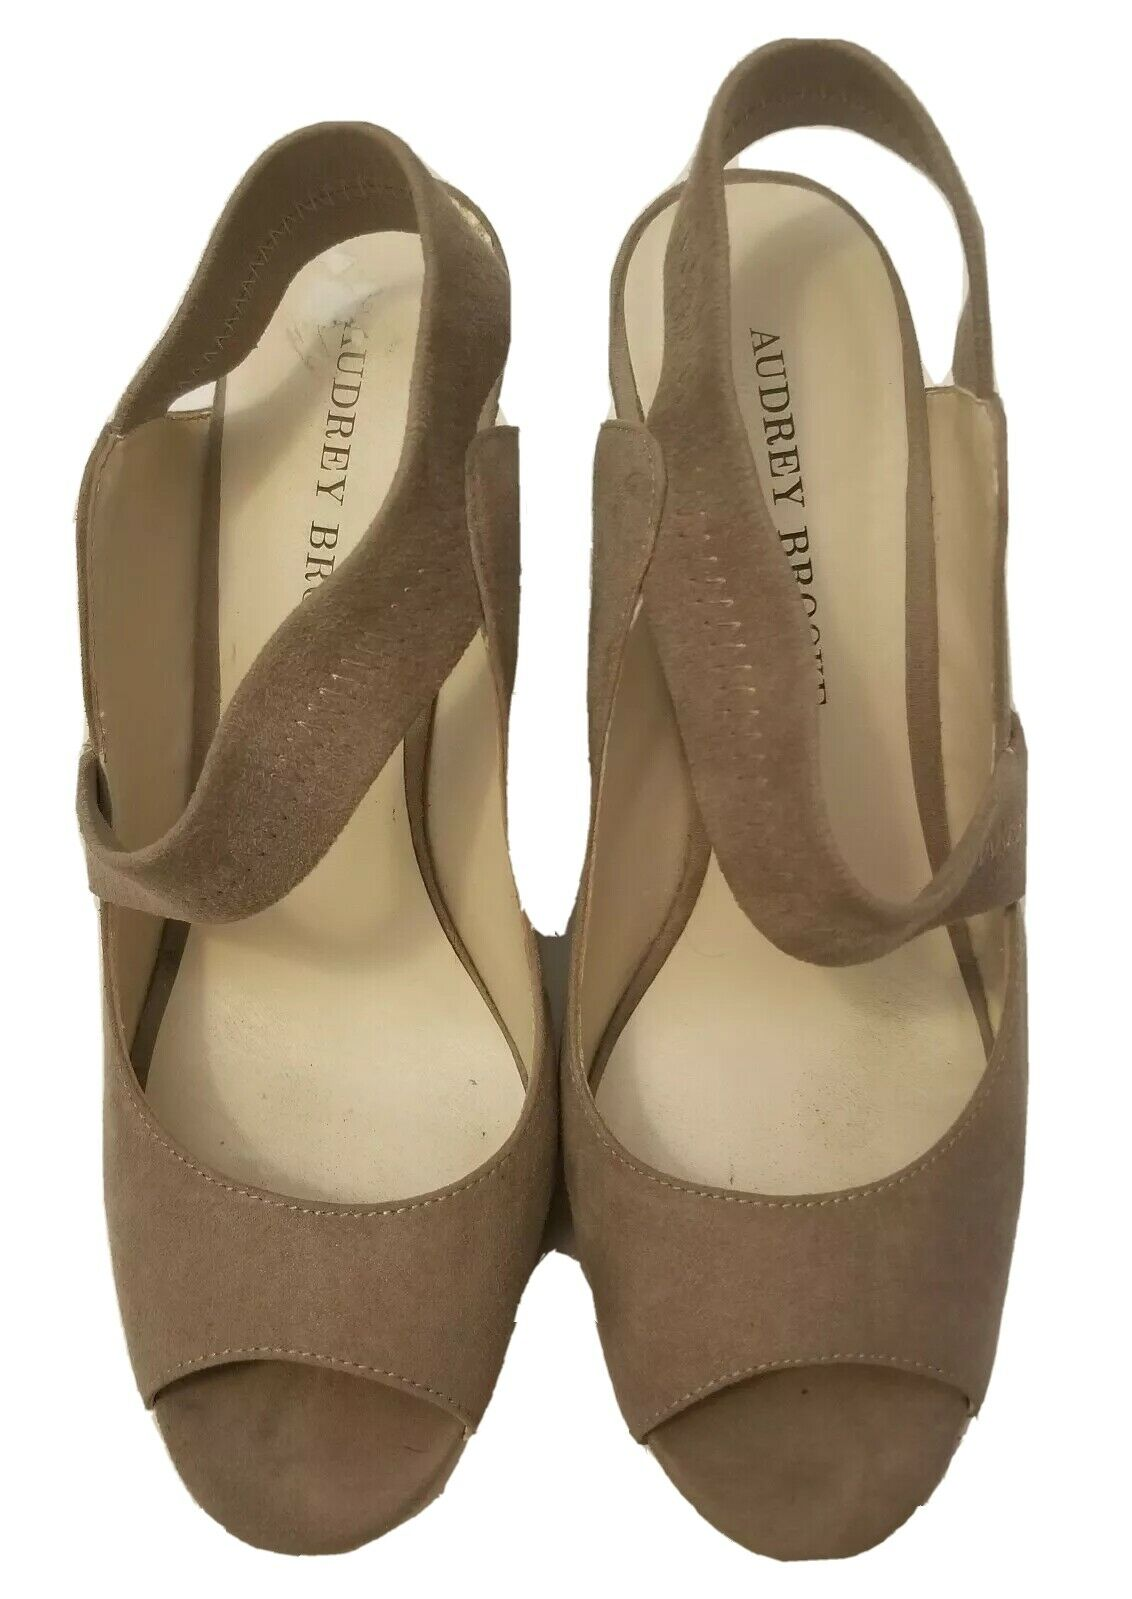 Audrey Brooke Strappy Suede and Cork Wedge heels Taupe Tan Size 8